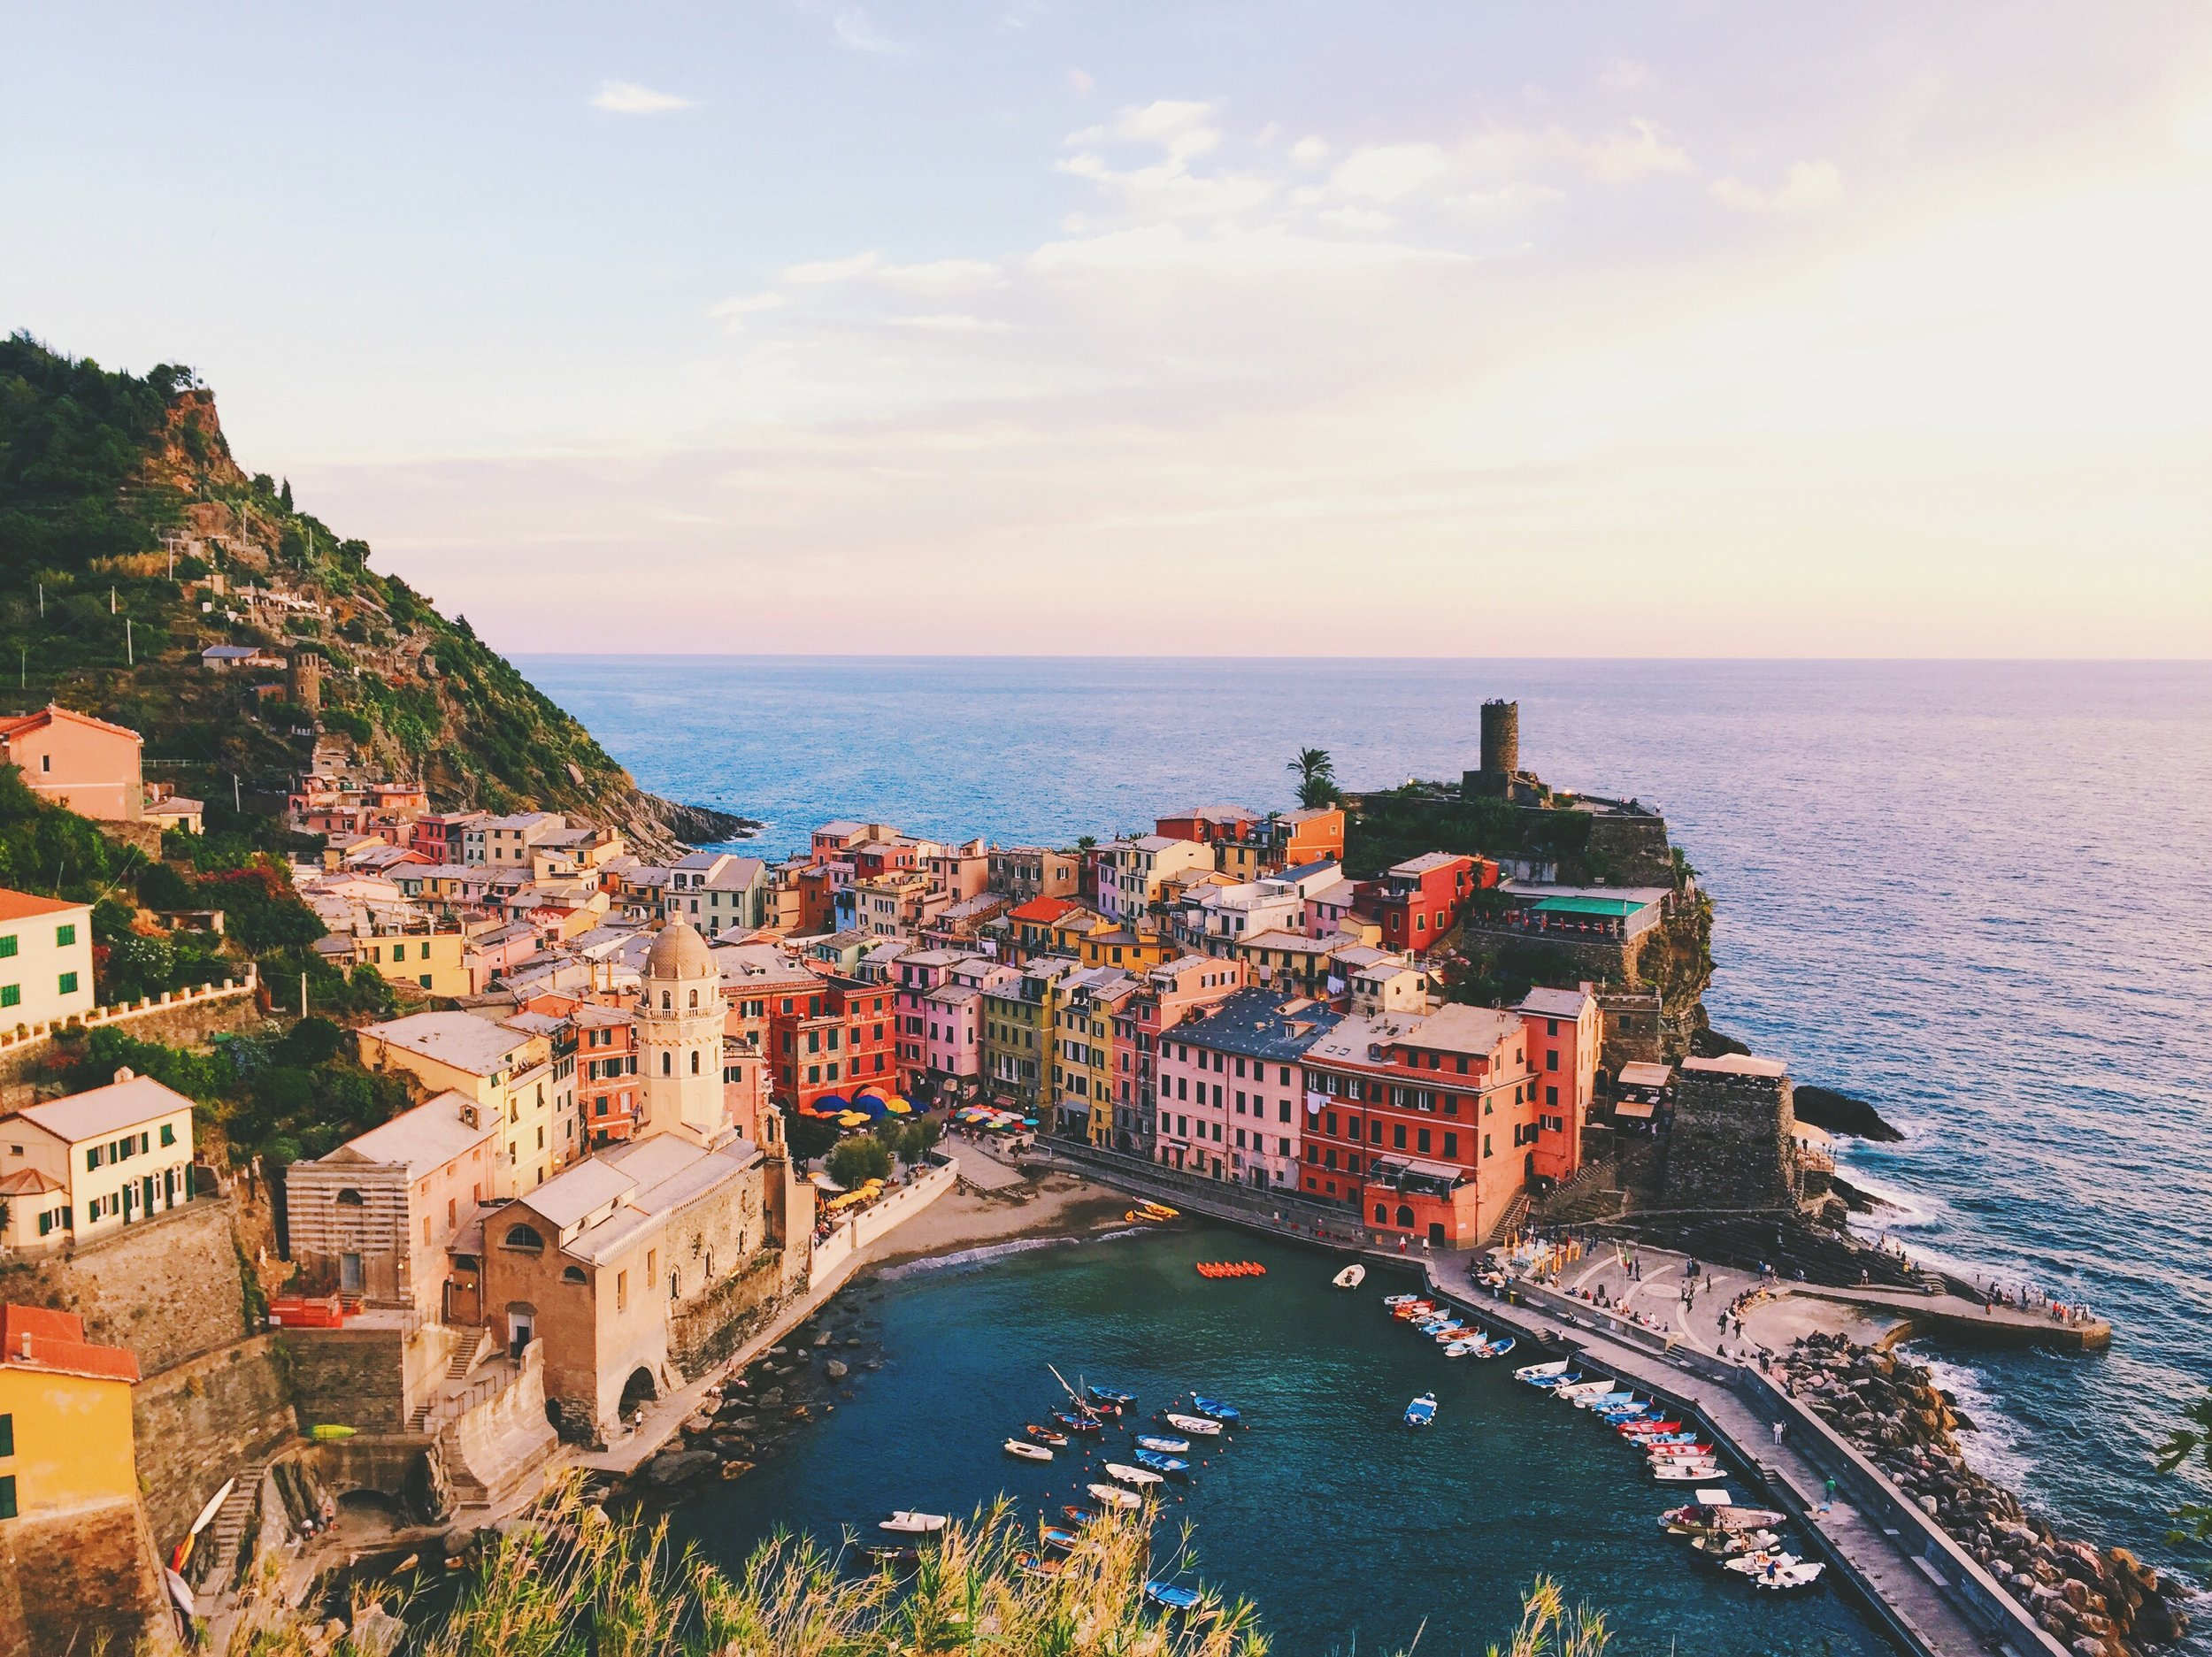 HIKE VERNAZZA TO MONTEROSSO